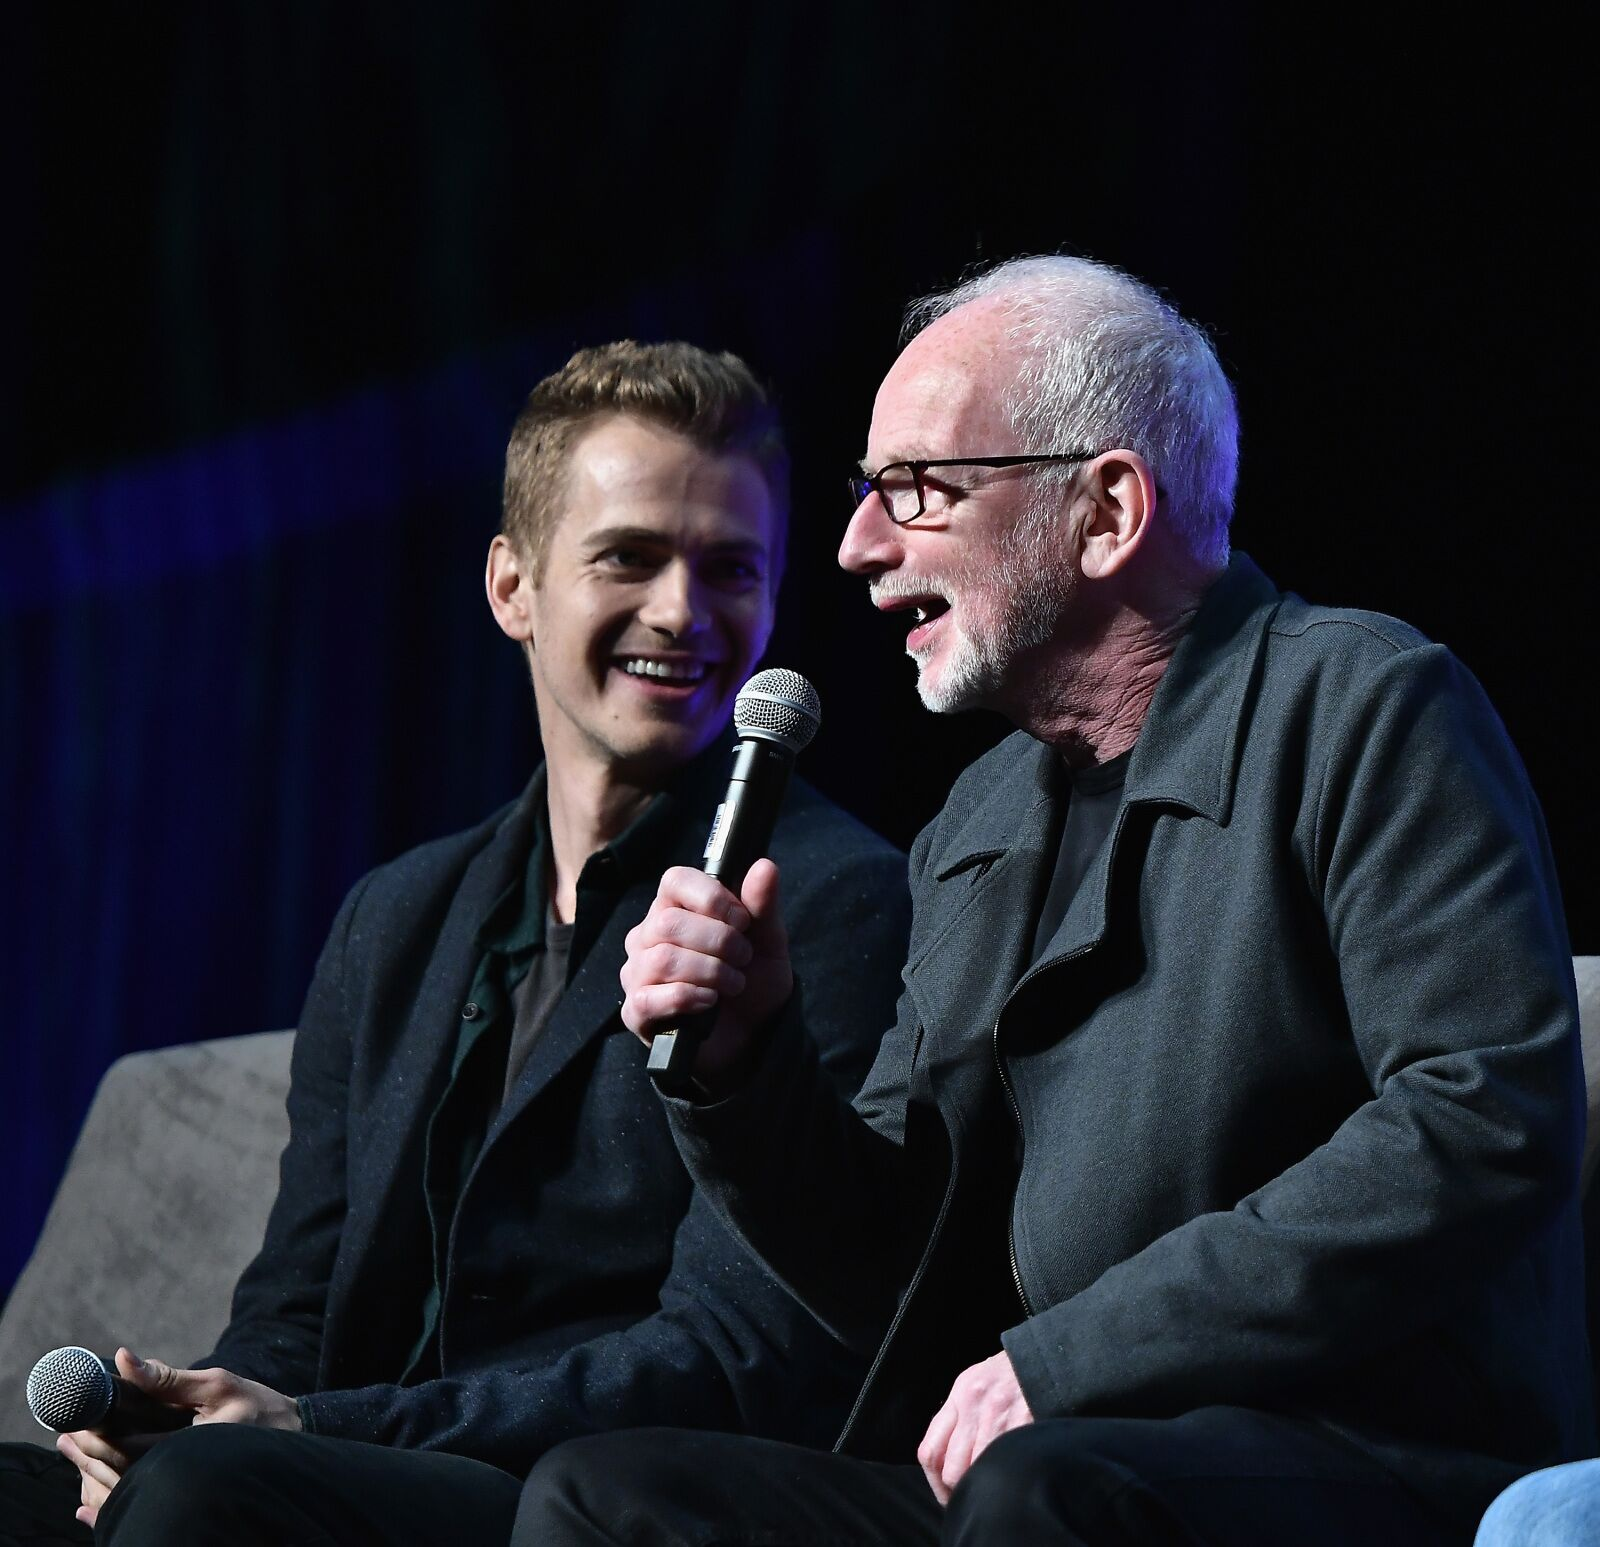 Star Wars: More evidence that Hayden Christensen could return as Anakin surfaces